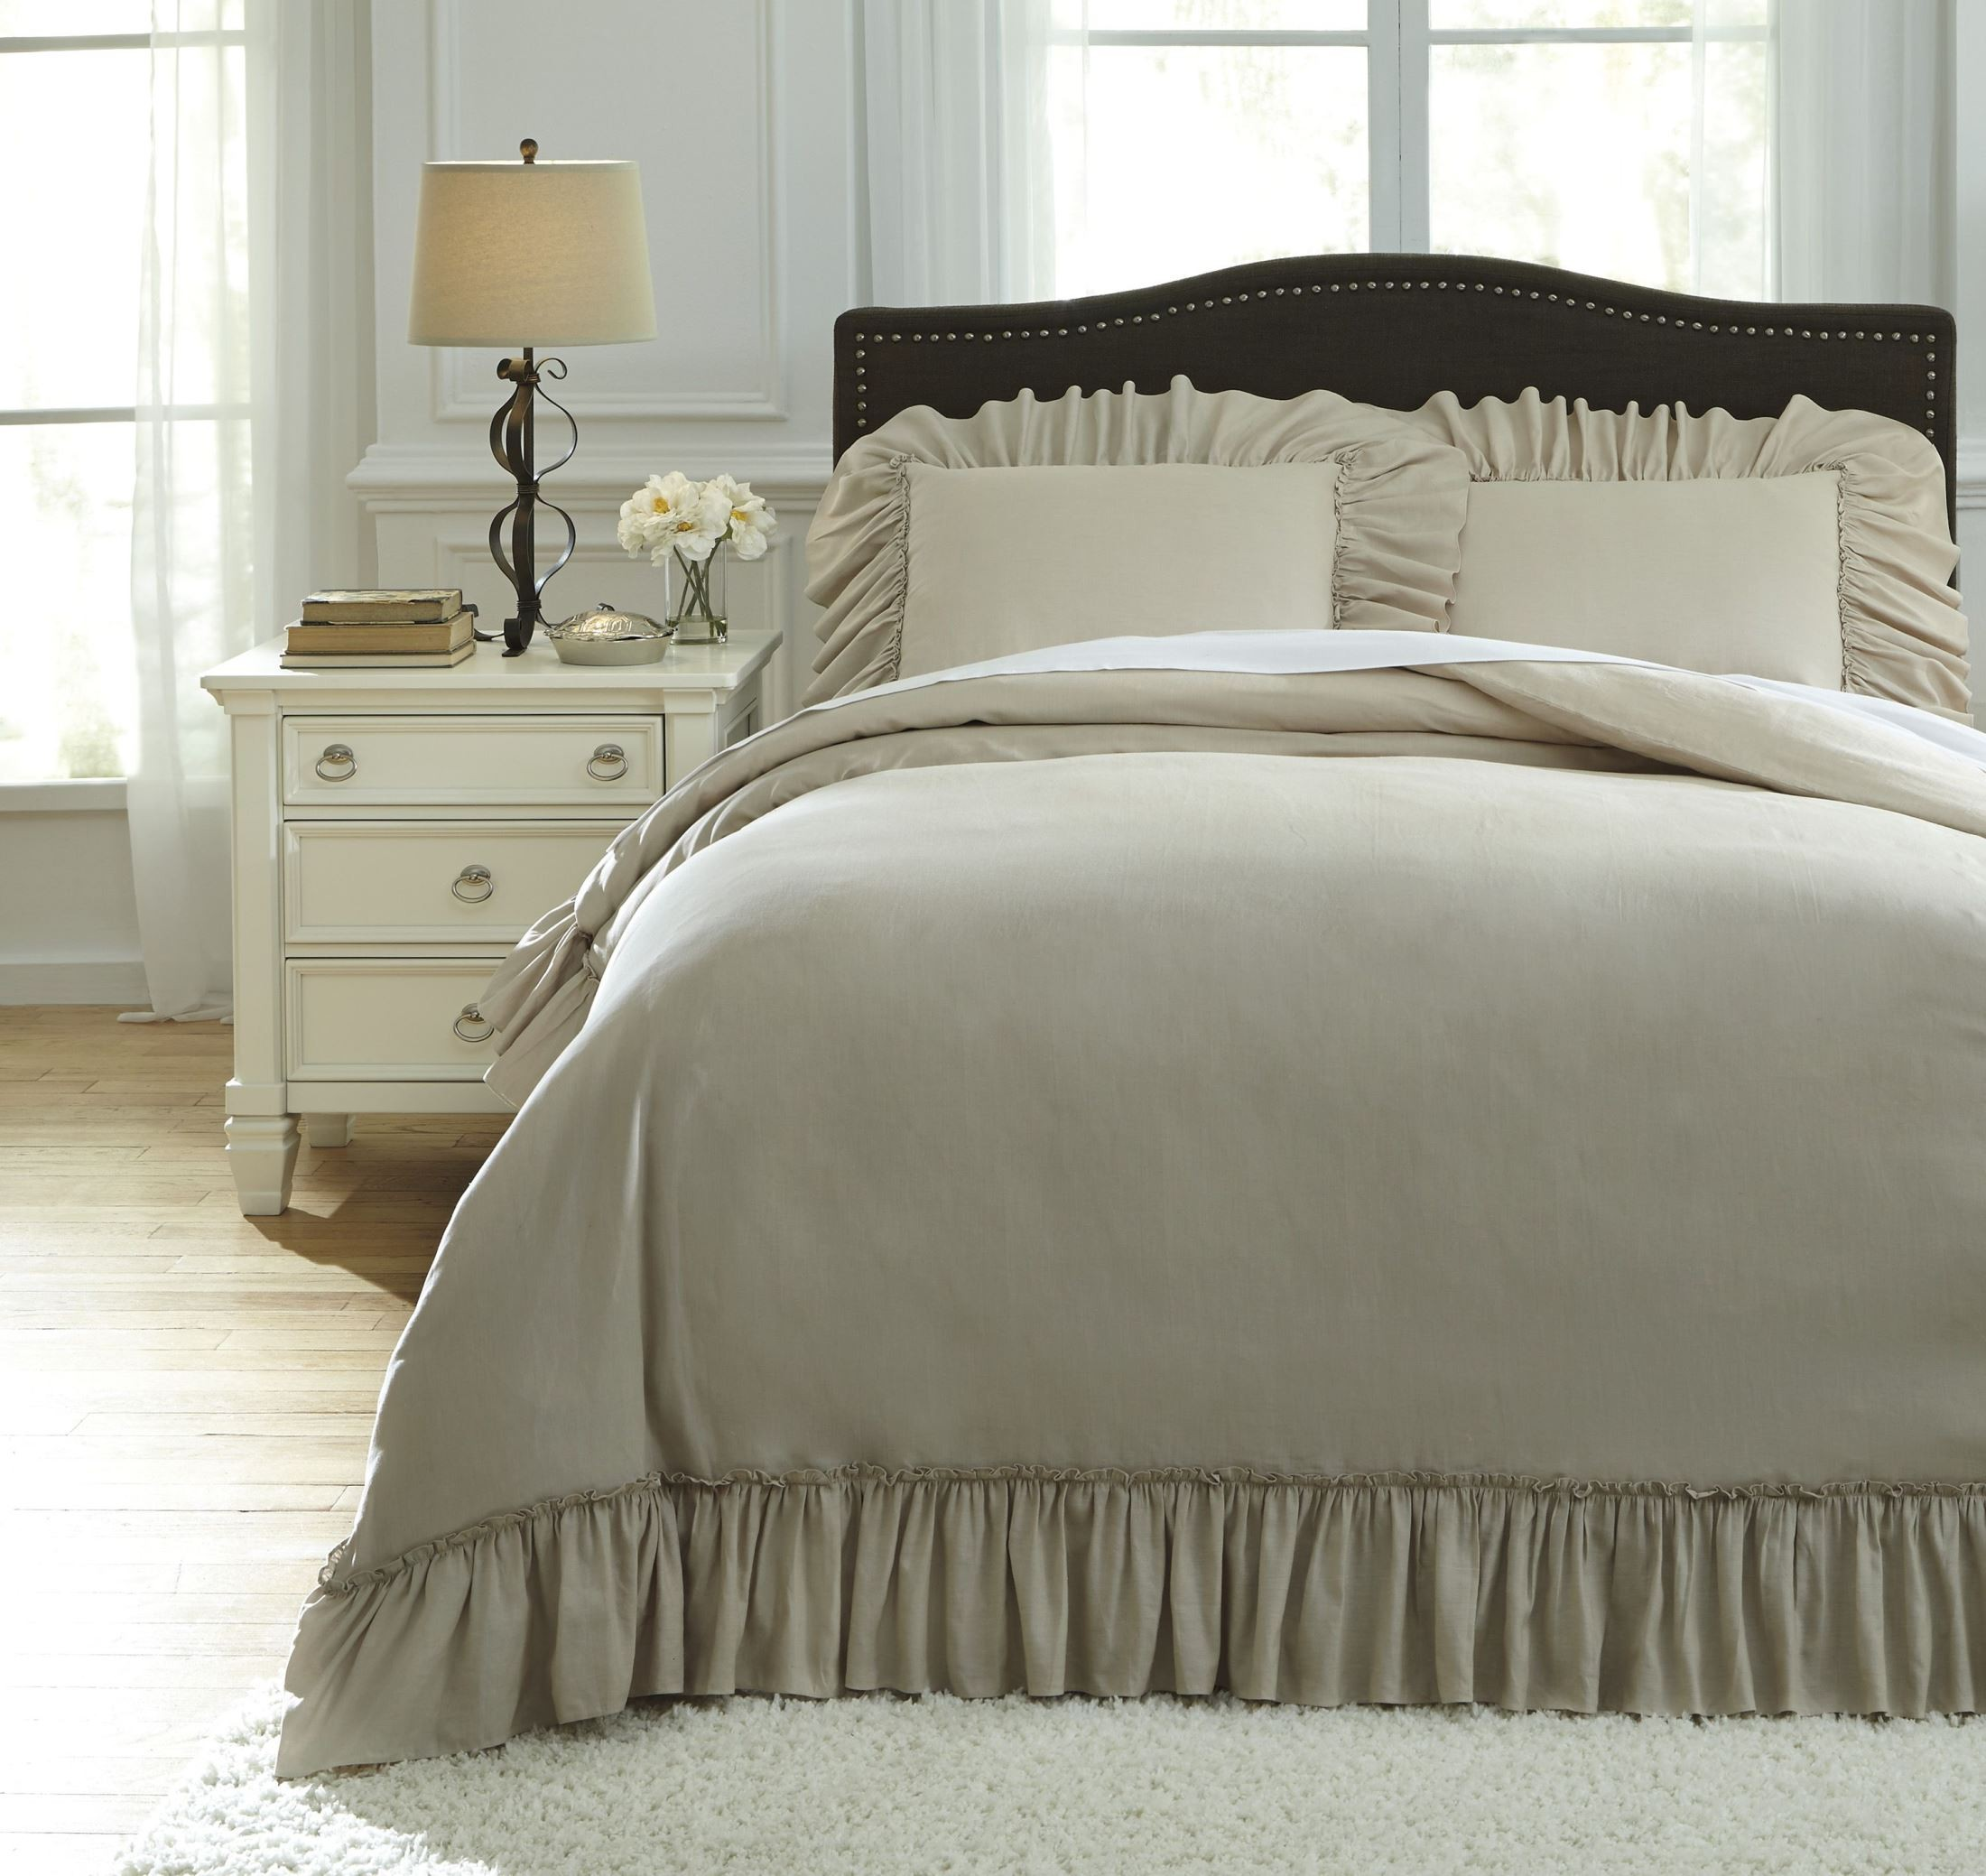 Lucianna Bedding Set $ – $ Saved. Quicklook Asher Medallion Organic Duvet Cover & Sham - Gray $ – $ Special $ 31 – $ Saved. Quicklook GIRLS DUVET COVERS at Pottery Barn Kids BOYS DUVET COVERS at Pottery Barn Kids. TEEN GIRLS.